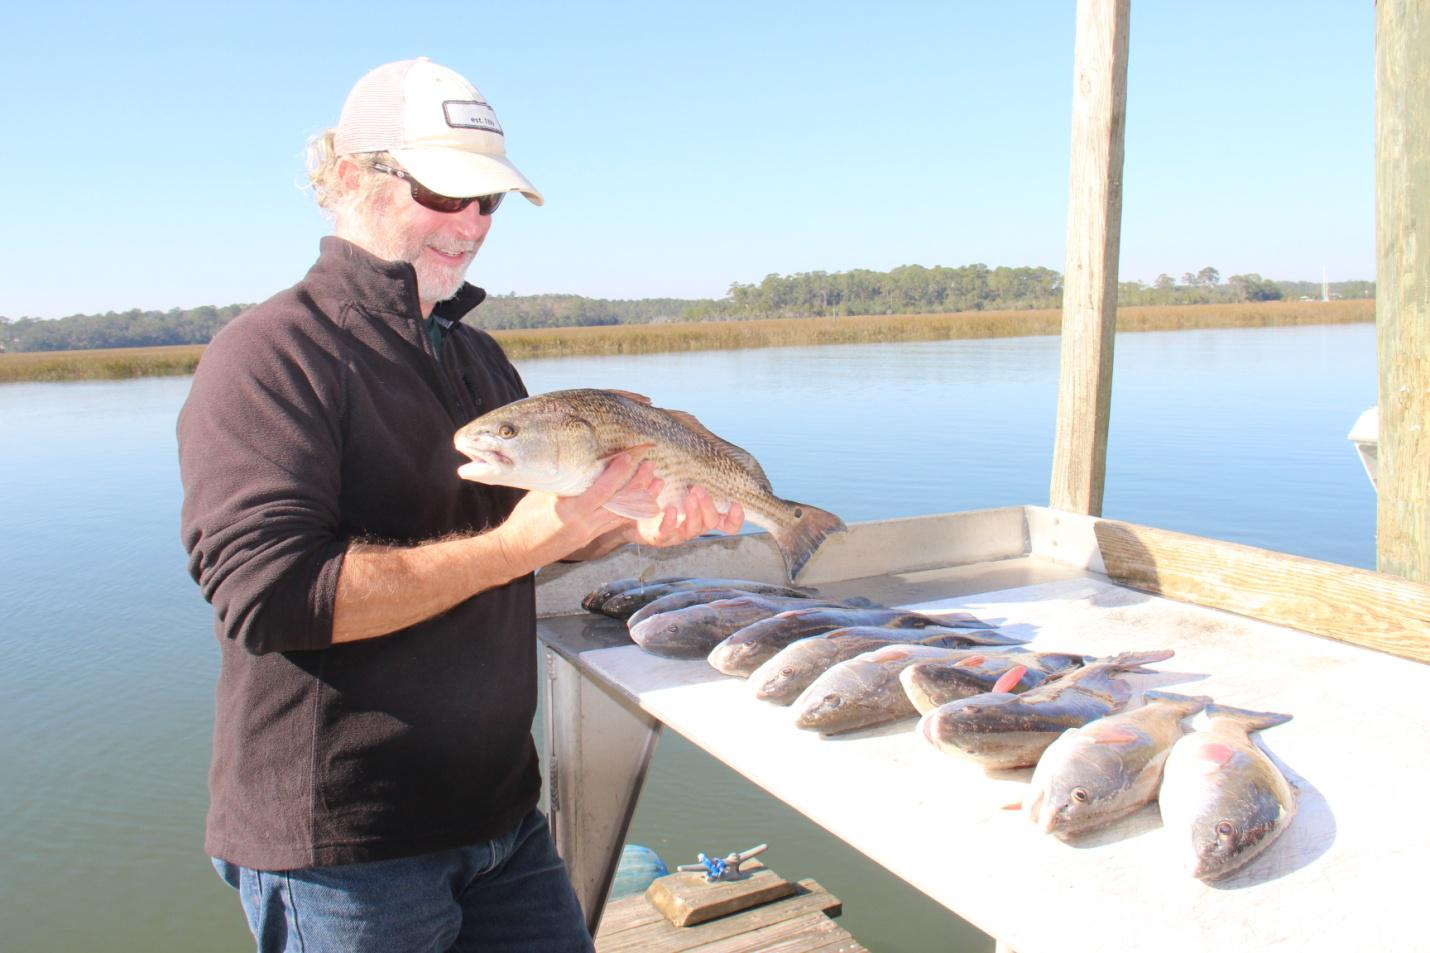 Capt judy inshore fishing report february 6 2017 for Southeast florida fishing report